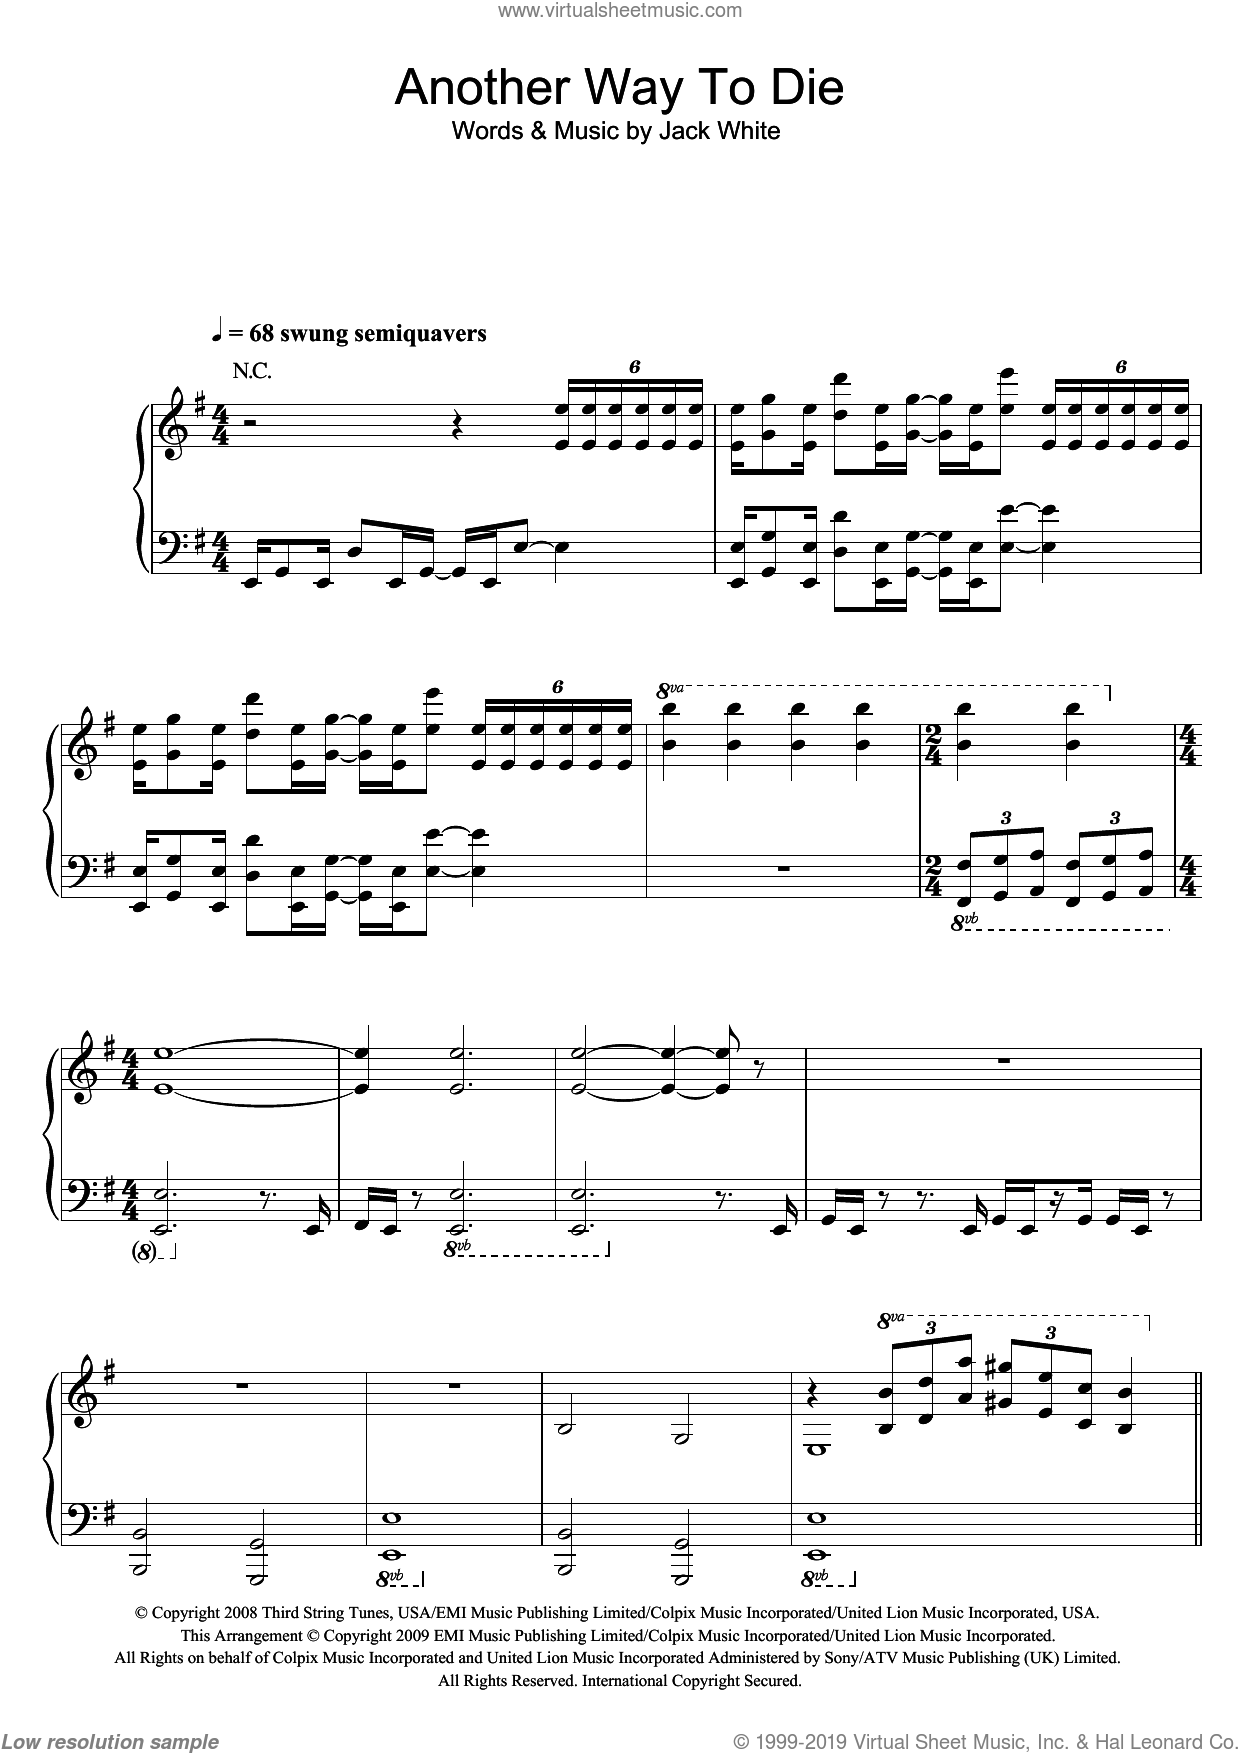 Another Way To Die sheet music for voice, piano or guitar by Jack White & Alicia Keys and Jack White, intermediate voice, piano or guitar. Score Image Preview.